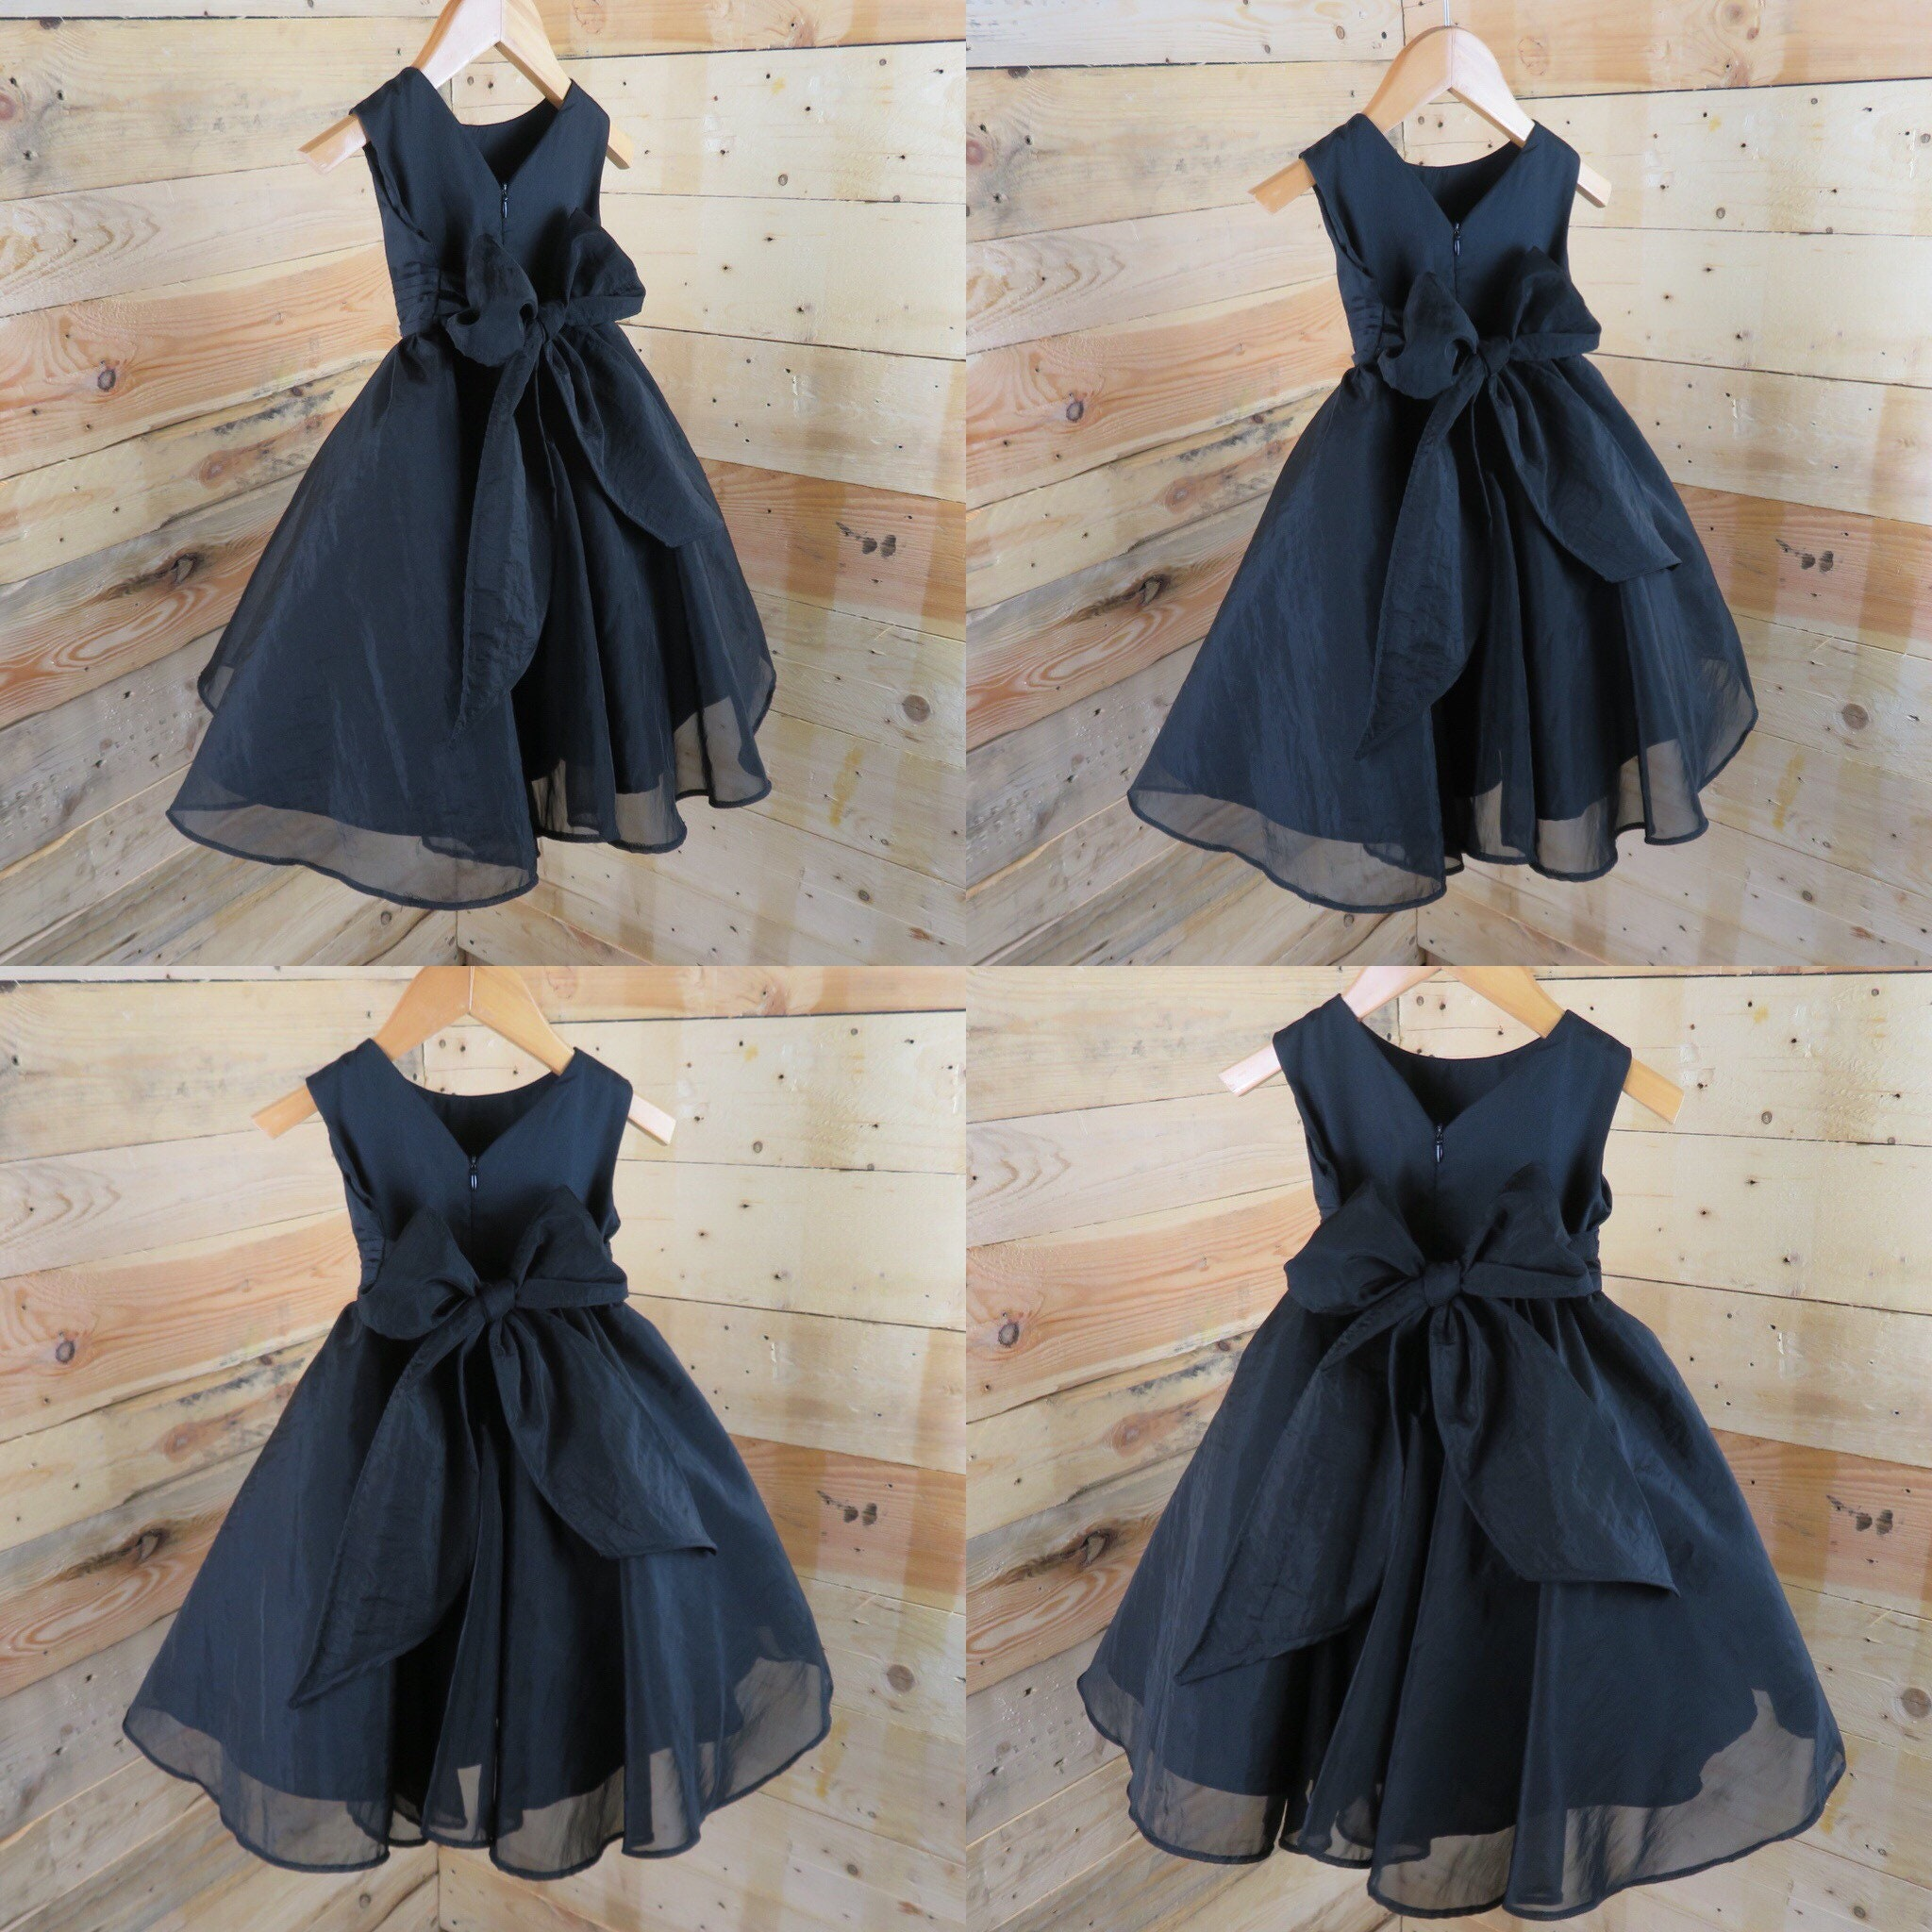 baby dress special occasion. baby elegant black dress black baby dress party Black baby dress Baby elegant dress baby dress